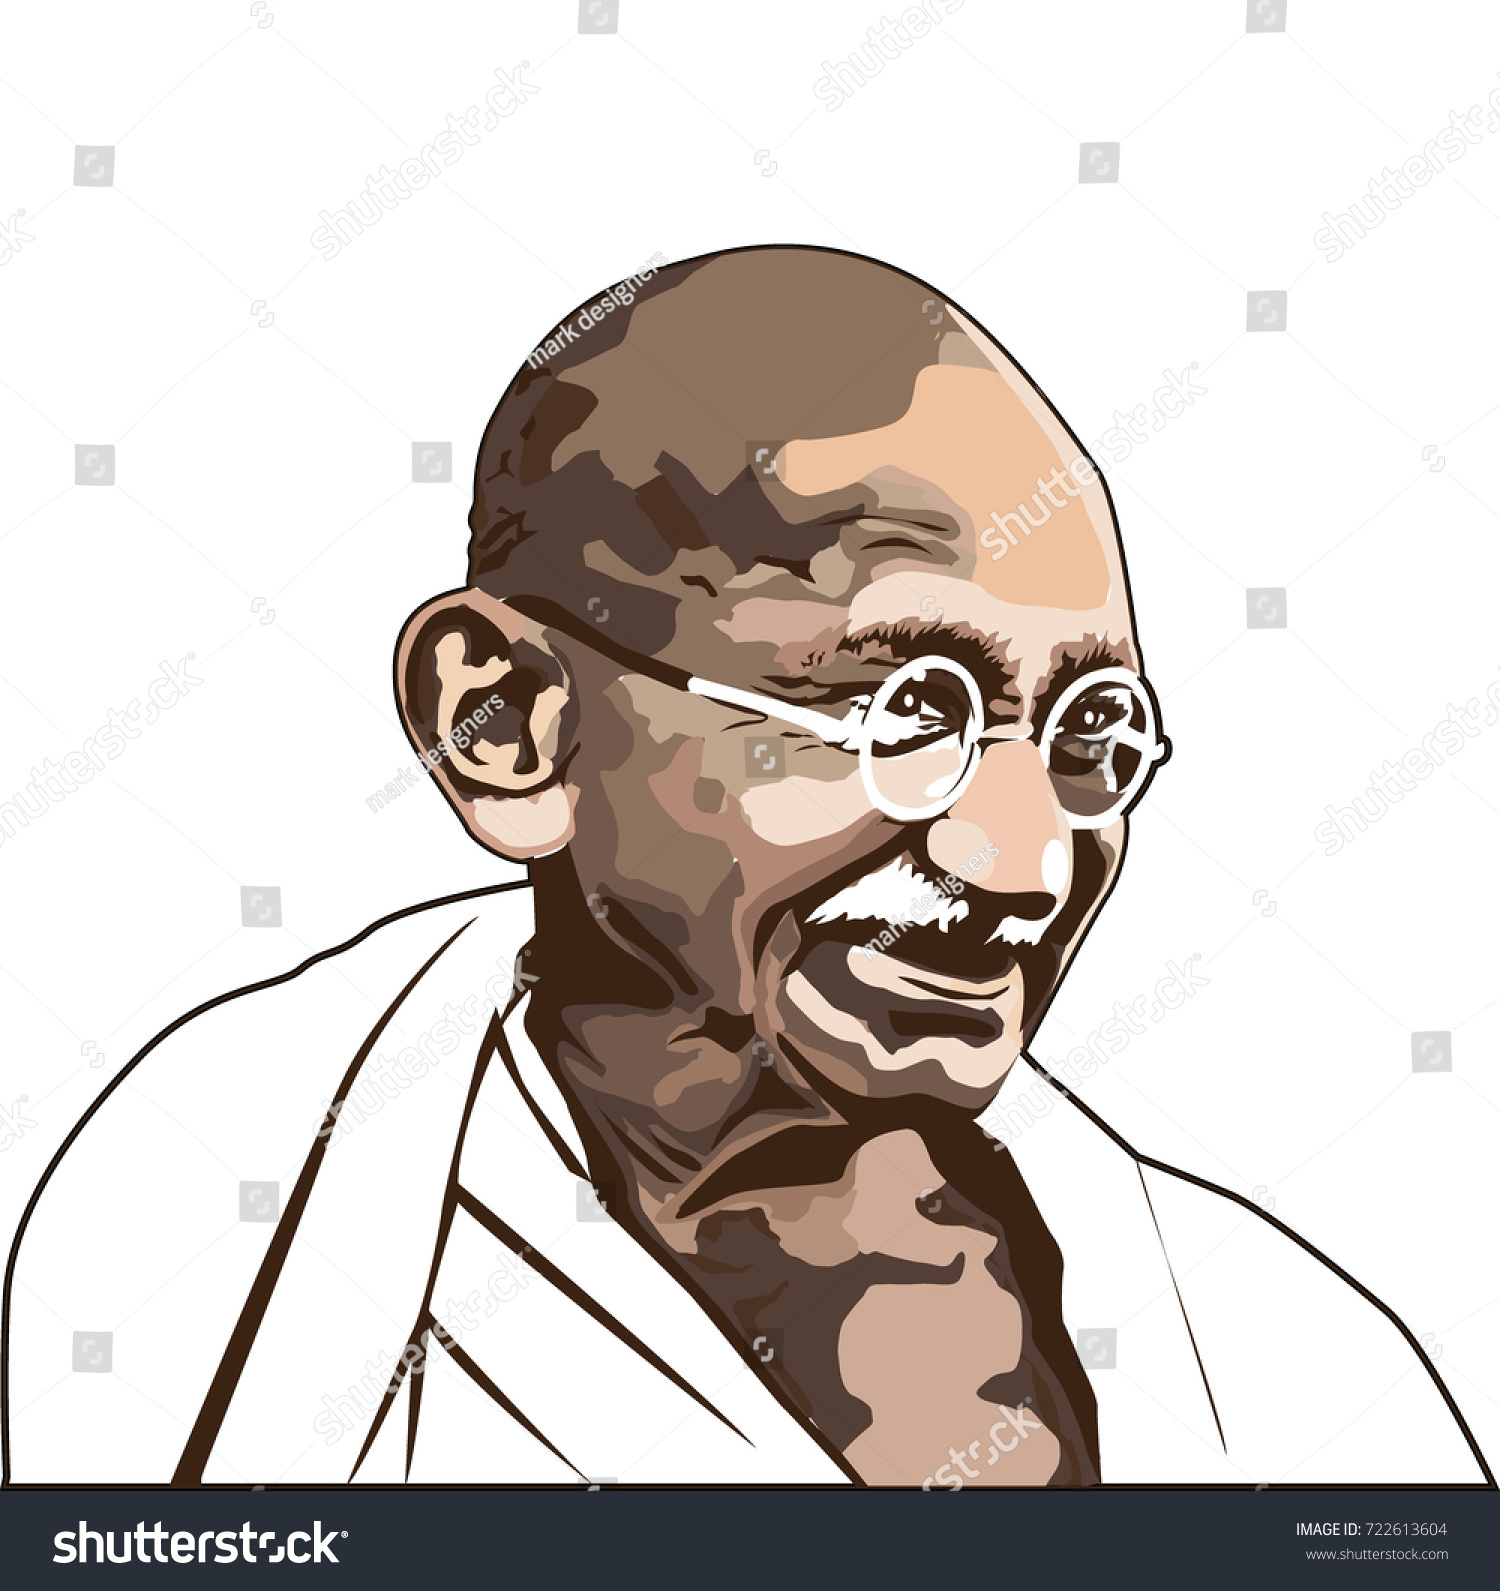 Gandhi indias father of the nation mahatma gandhi vector image leader of the